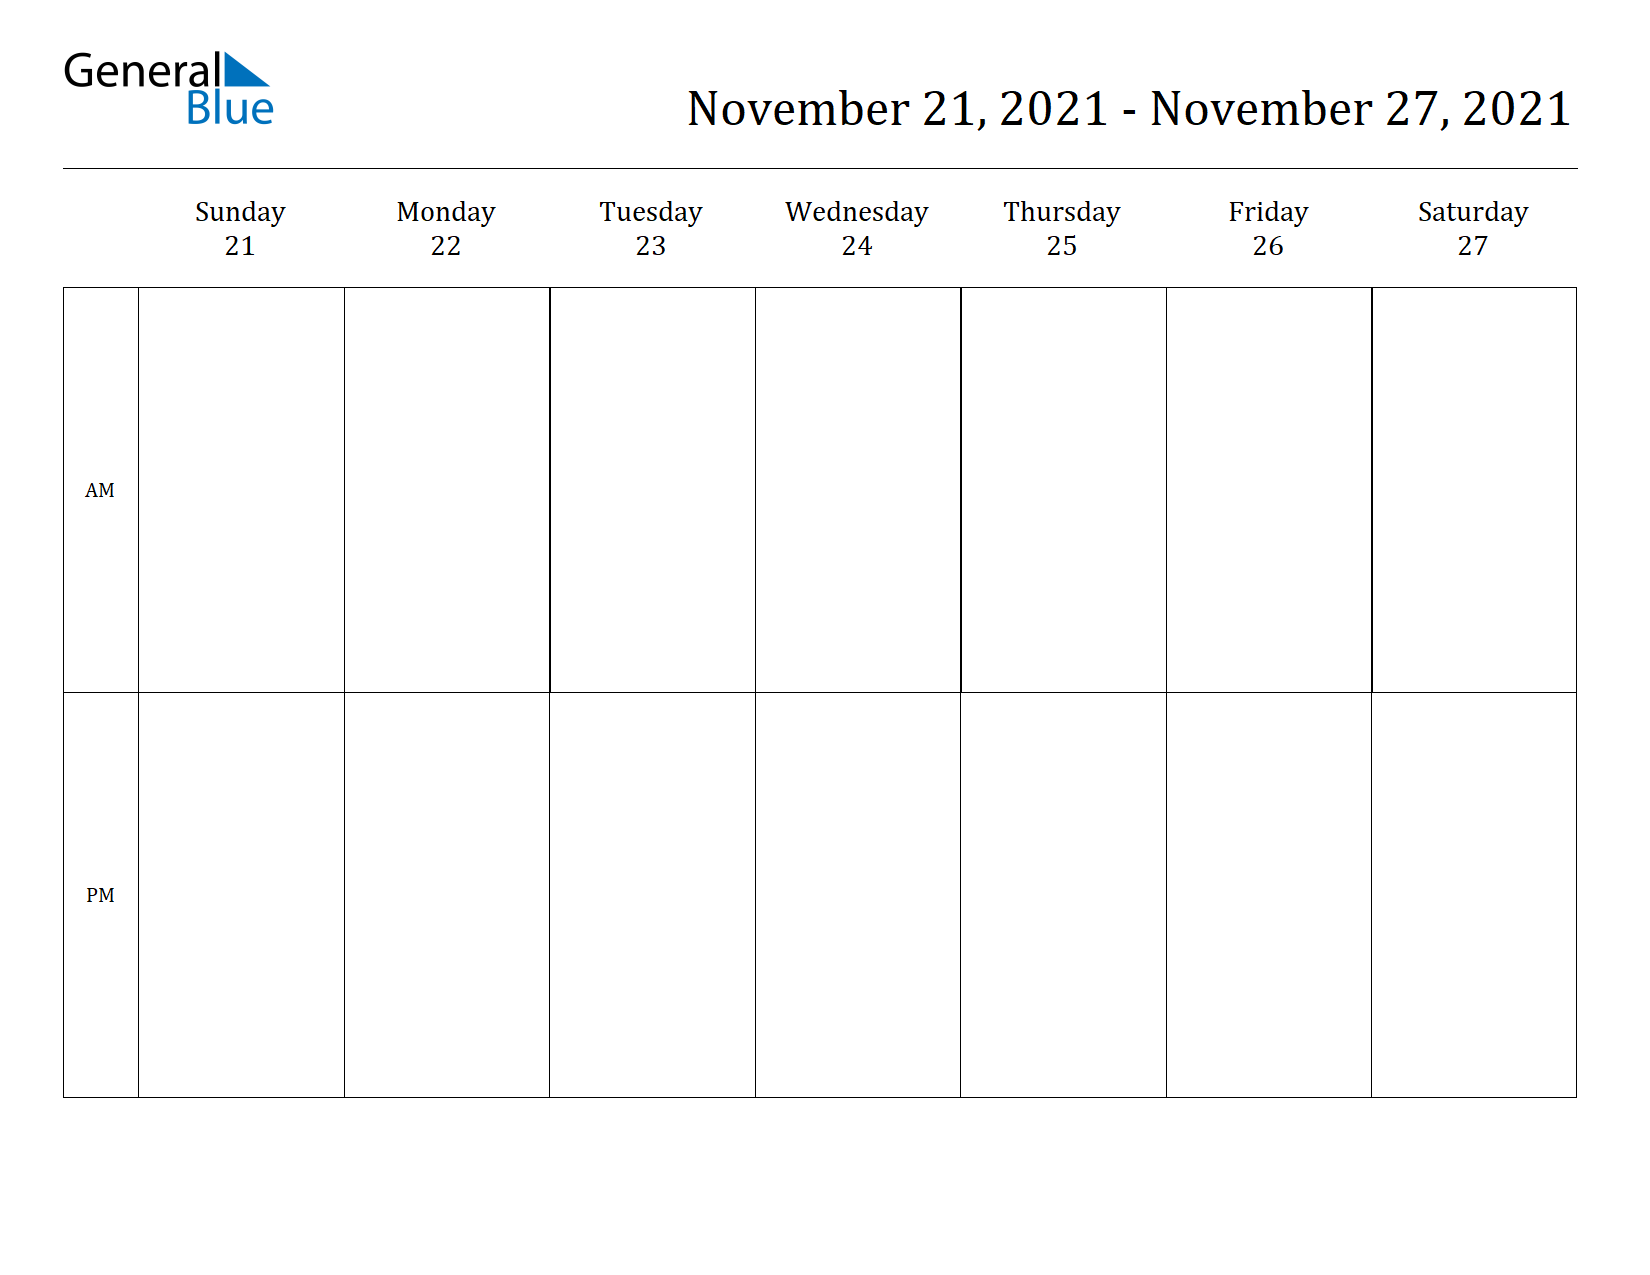 Weekly Calendar for Nov 21, 2021 to Nov 27, 2021